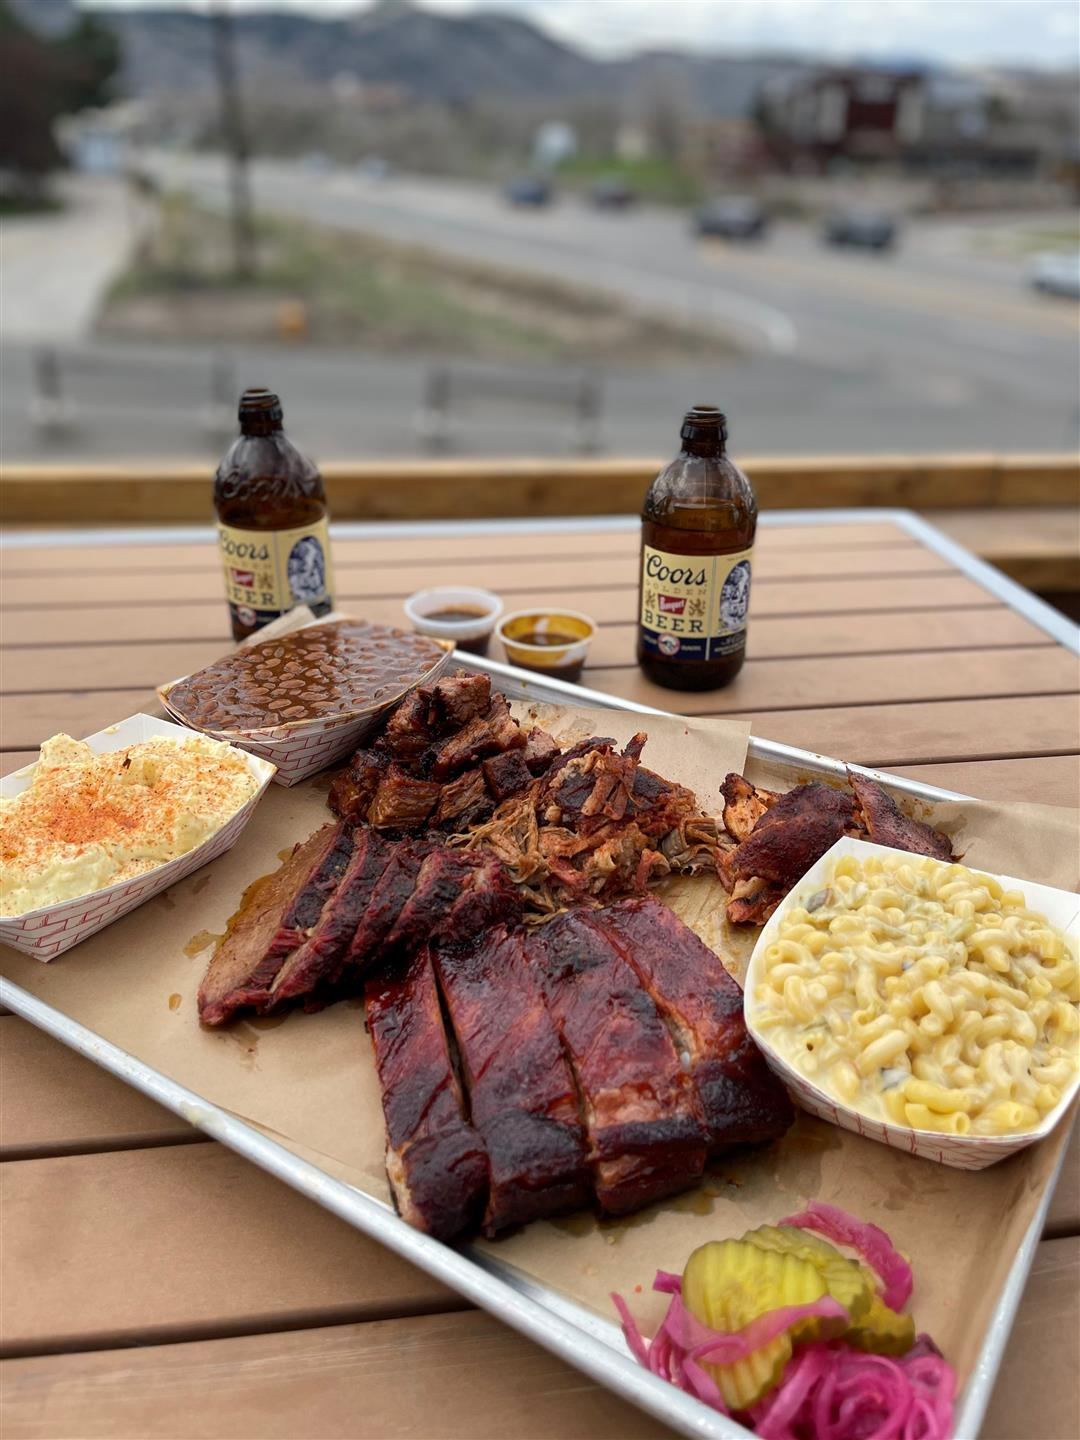 tray of food with two bottles on a picnic table